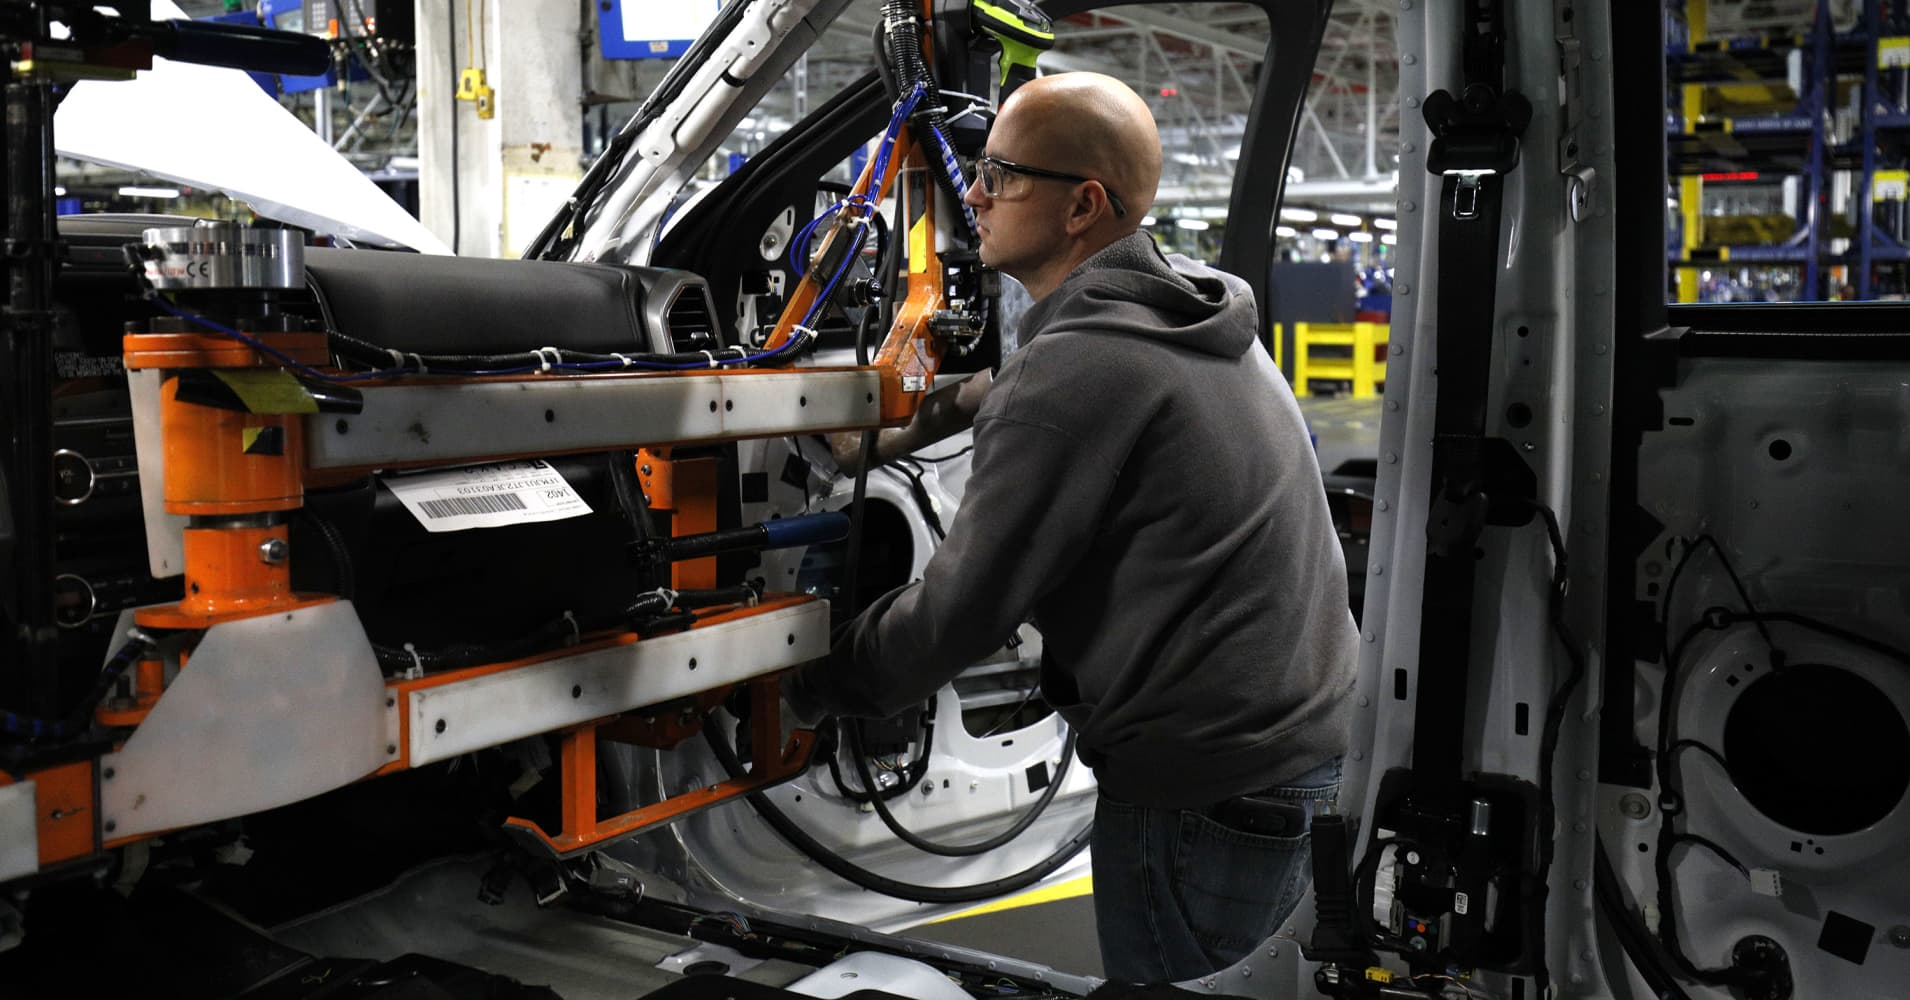 cnbc.com - Phil LeBeau - Ford to build new factory in Michigan for autonomous vehicles